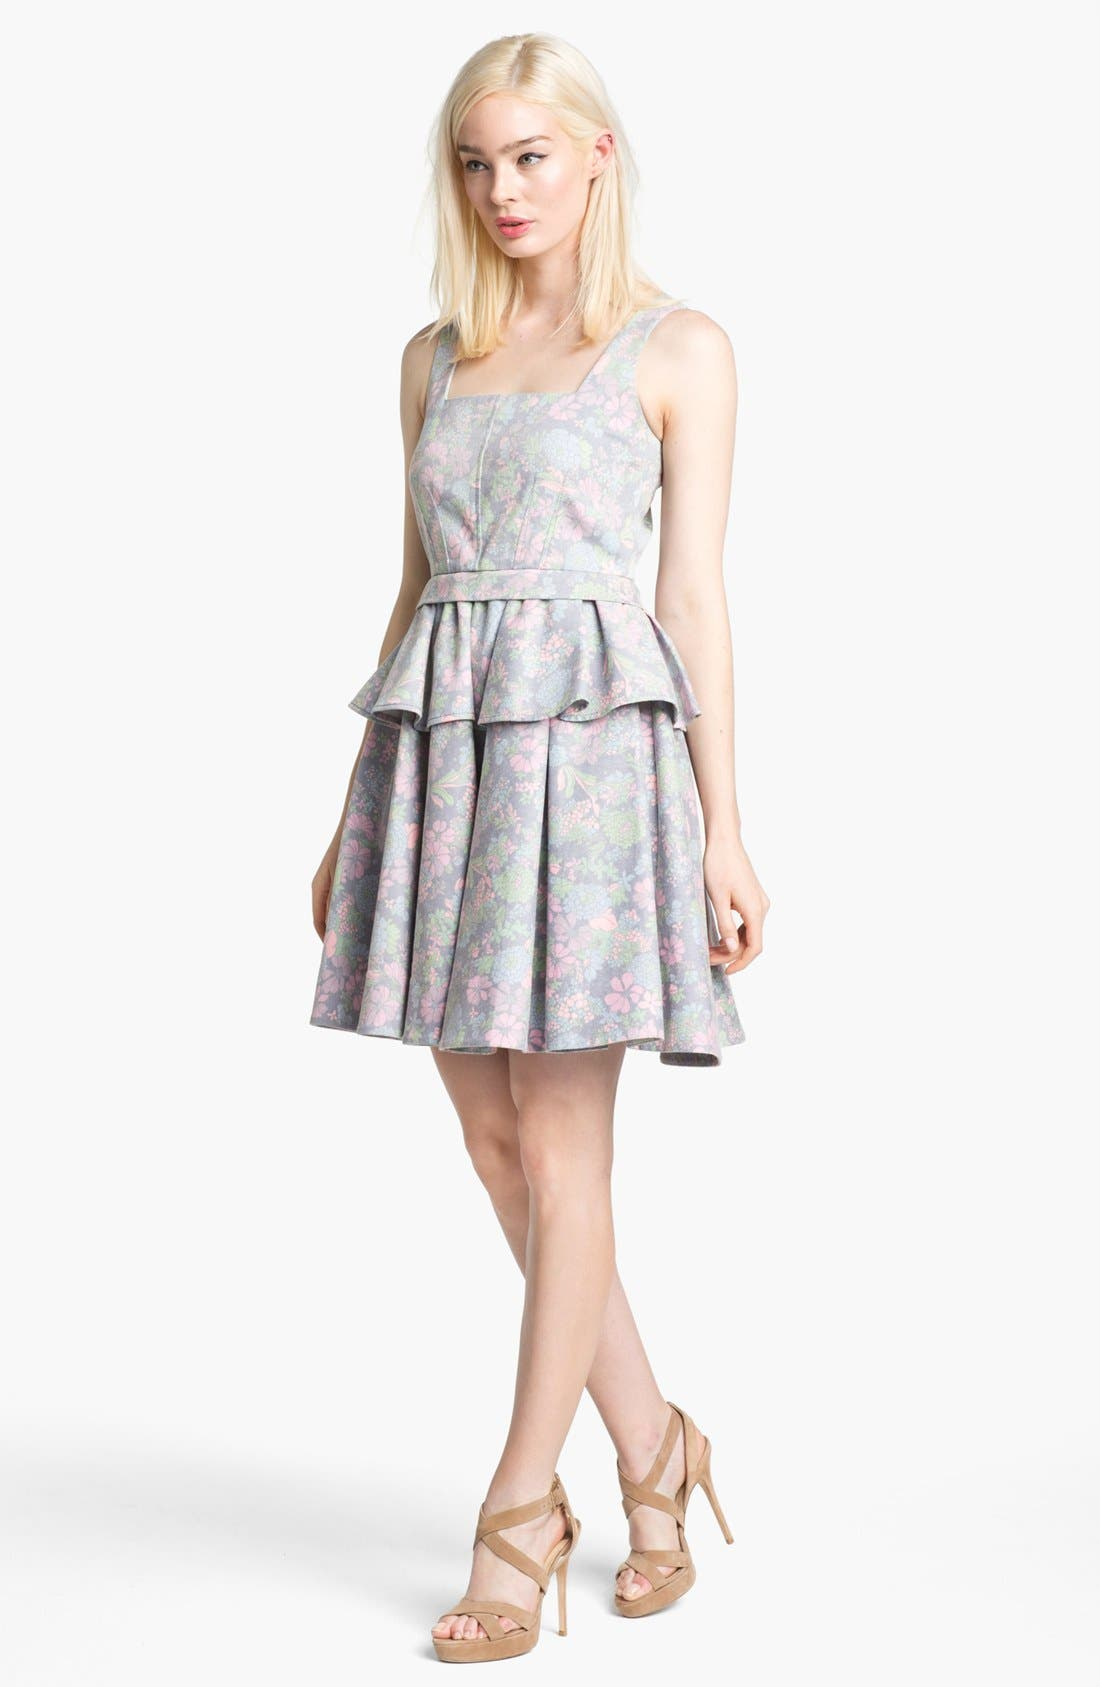 Alternate Image 1 Selected - MARC BY MARC JACOBS 'Drew Blossom' Stretch Fit & Flare Dress